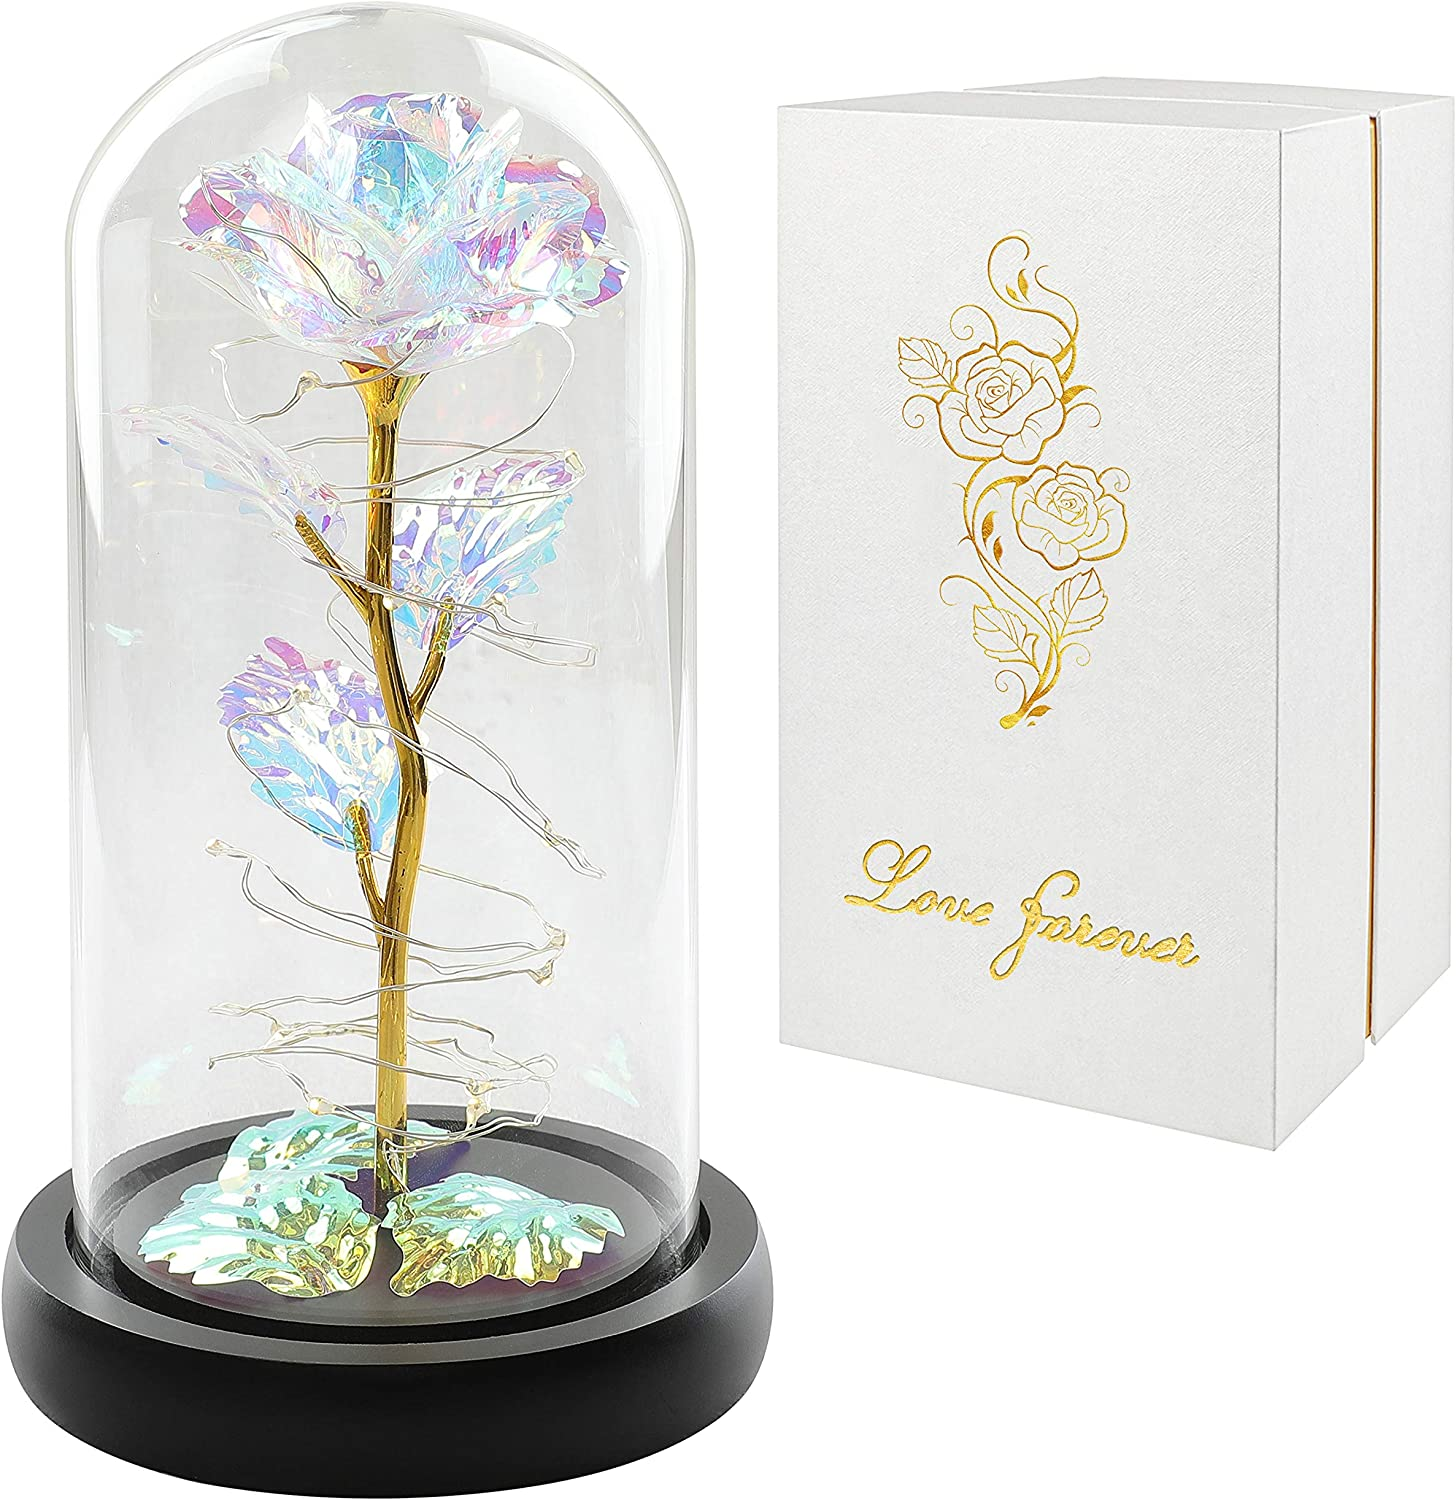 Colorful Artificial Flower Rose Gift, Led Light String on The Colorful Flower,Lasts Forever in A Glass Dome,Unique Gifts for Women, Christmas, Wedding,Valentine's Day, Anniversary and Birthday